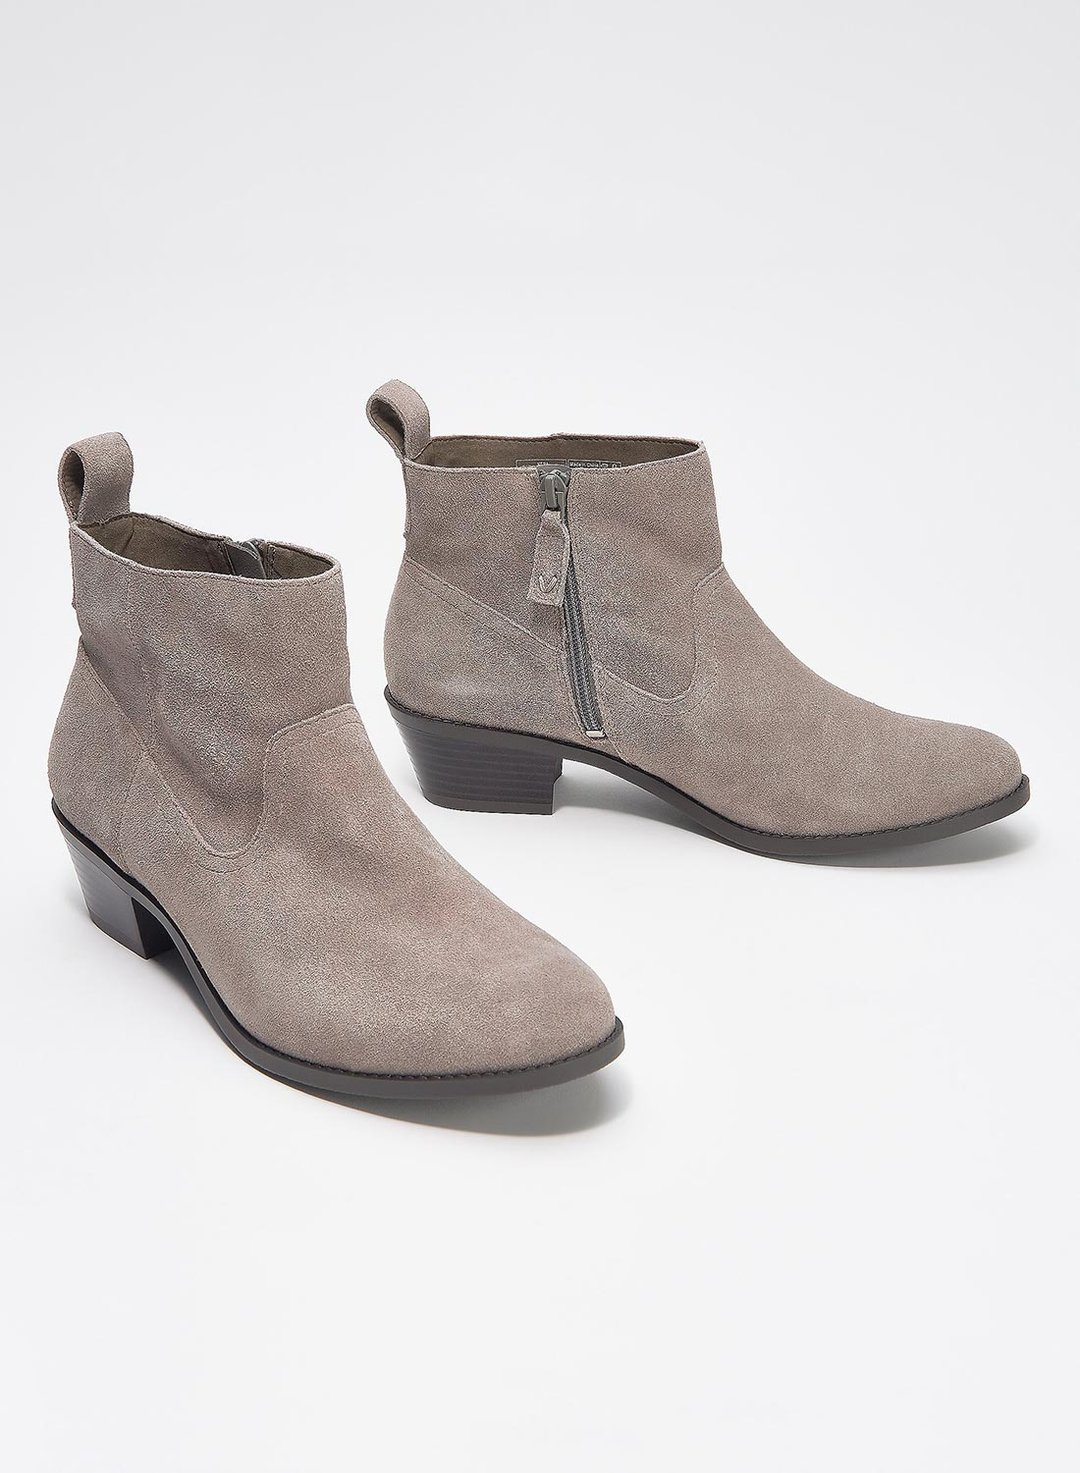 Gray British Style Thick Mid-heel Frosted Women's Shoes LC12333-11